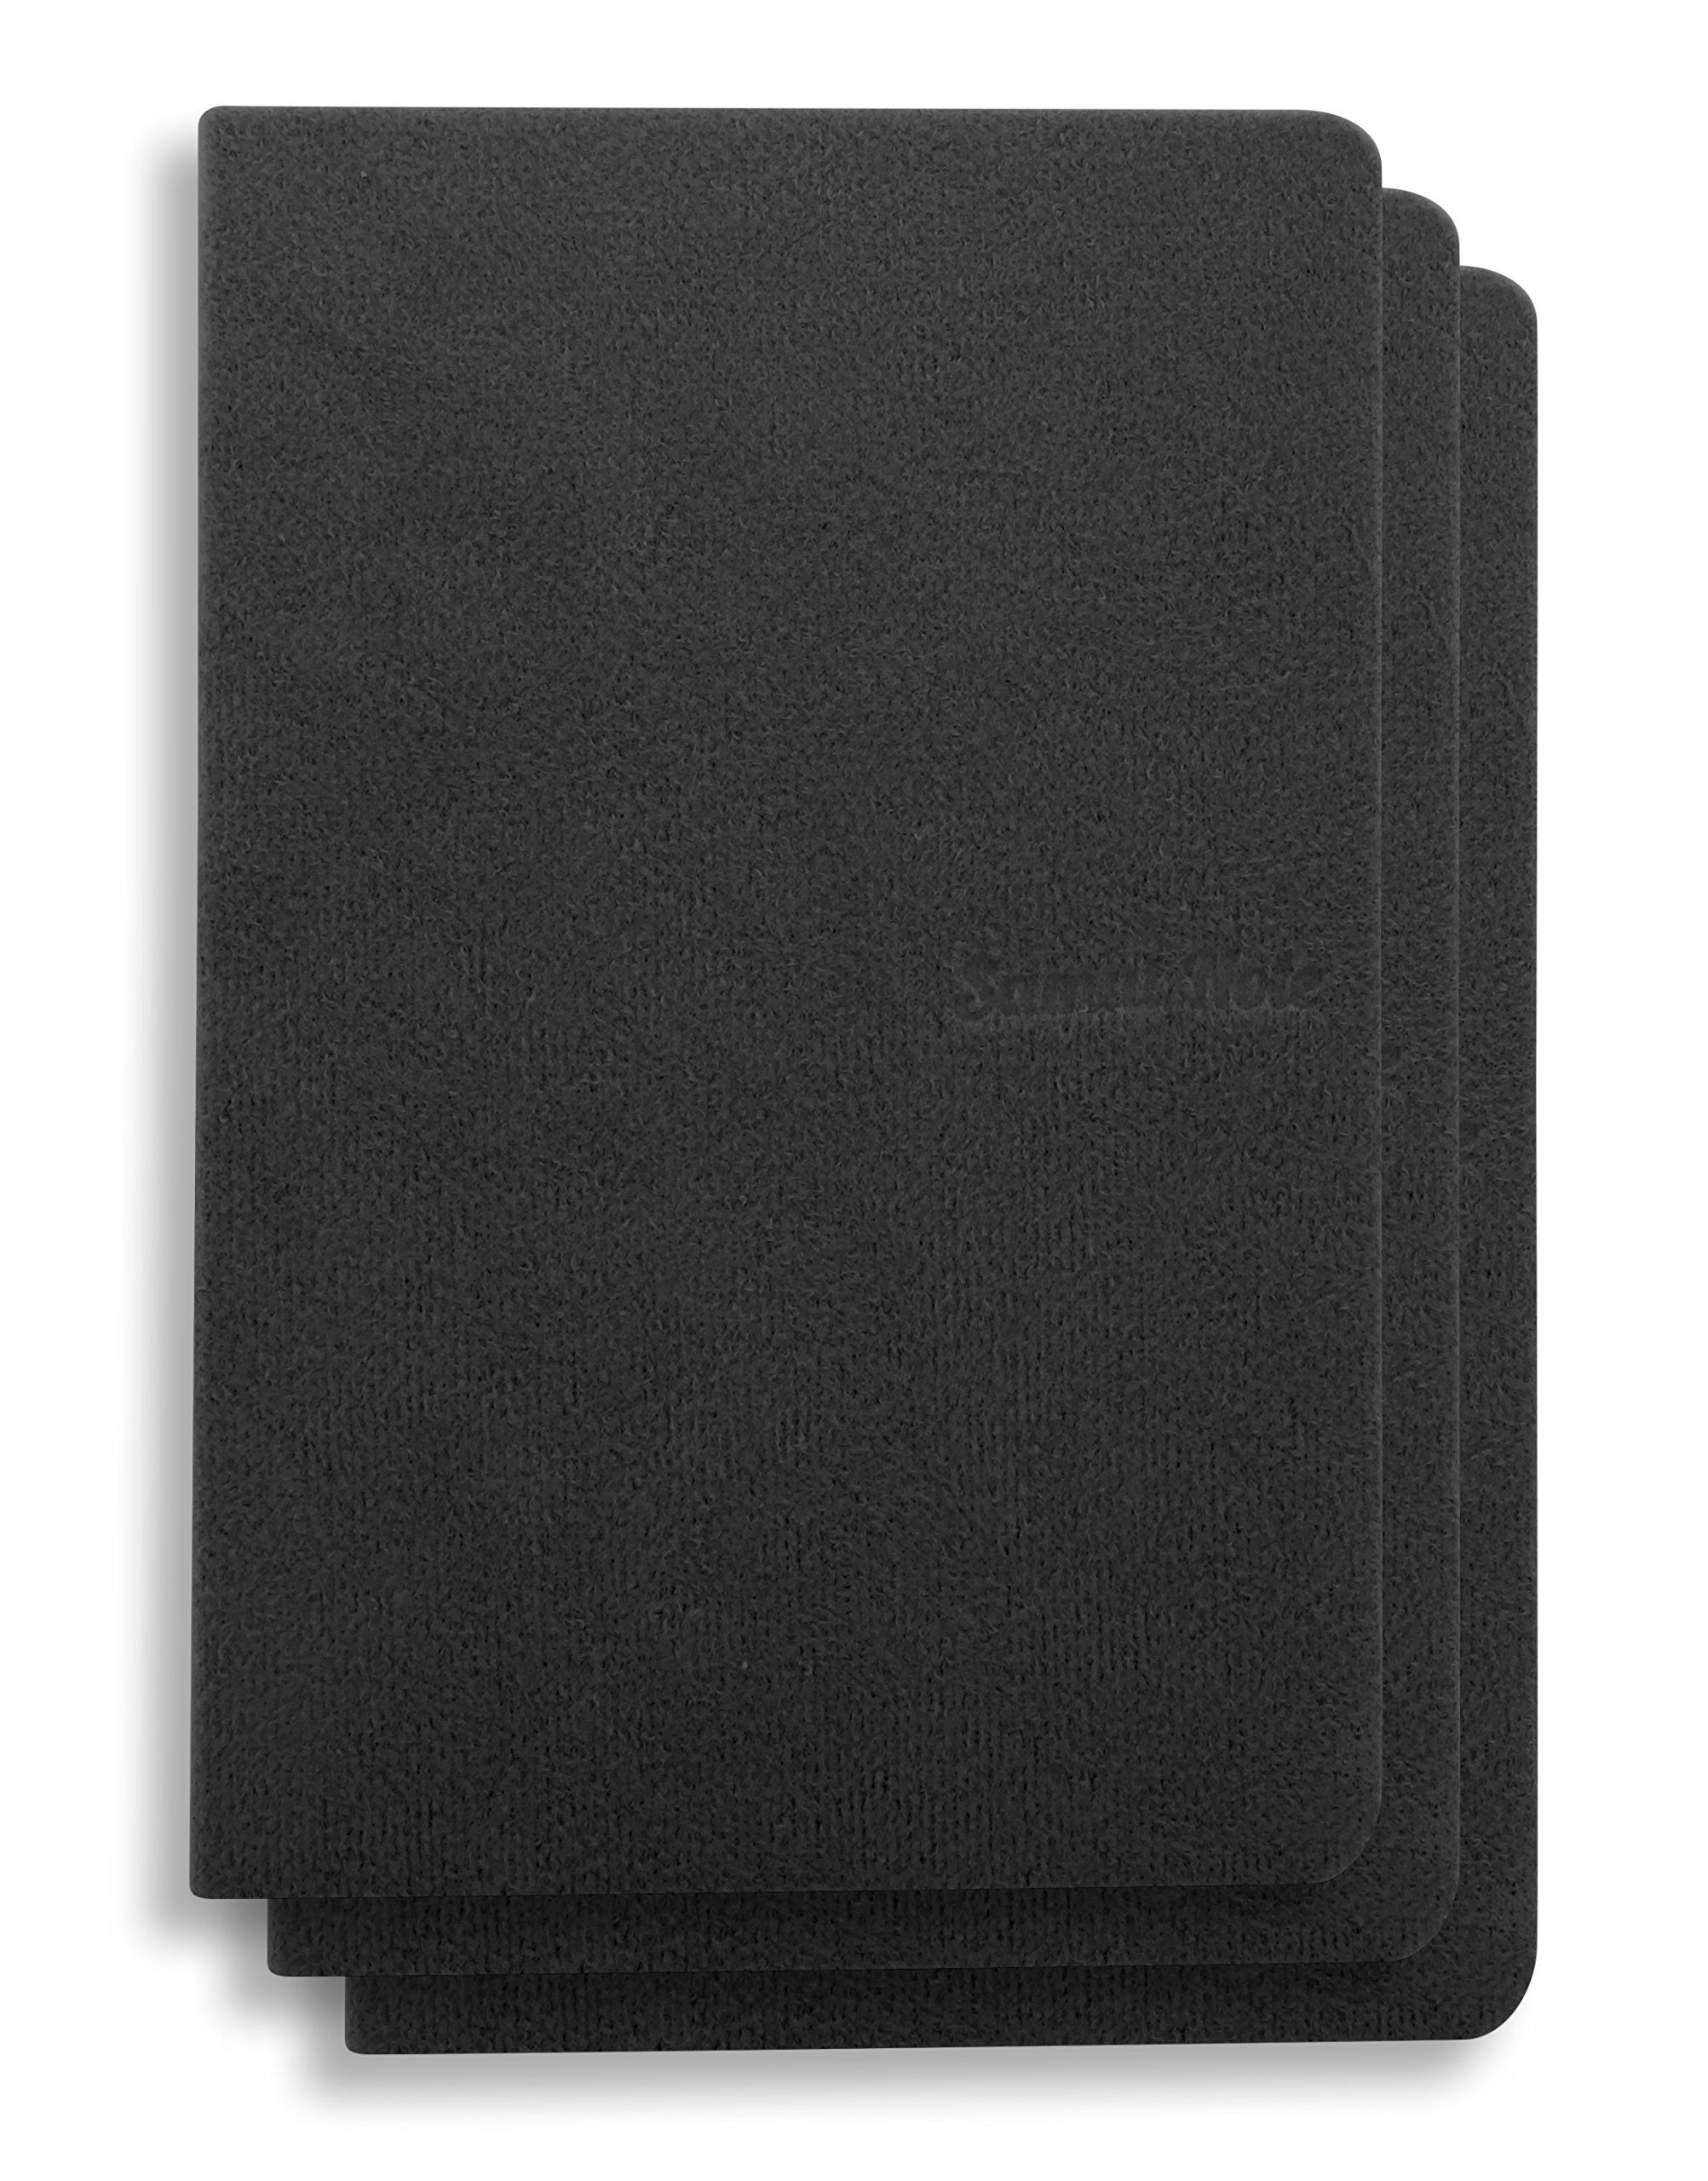 (Pack Of 3) 5.7 x 3.8 inches NoteBook Handmade Soft Black Fabric Cover, 192 lined Pages | Lay Flat Binding | Cream Paper, A6 Size